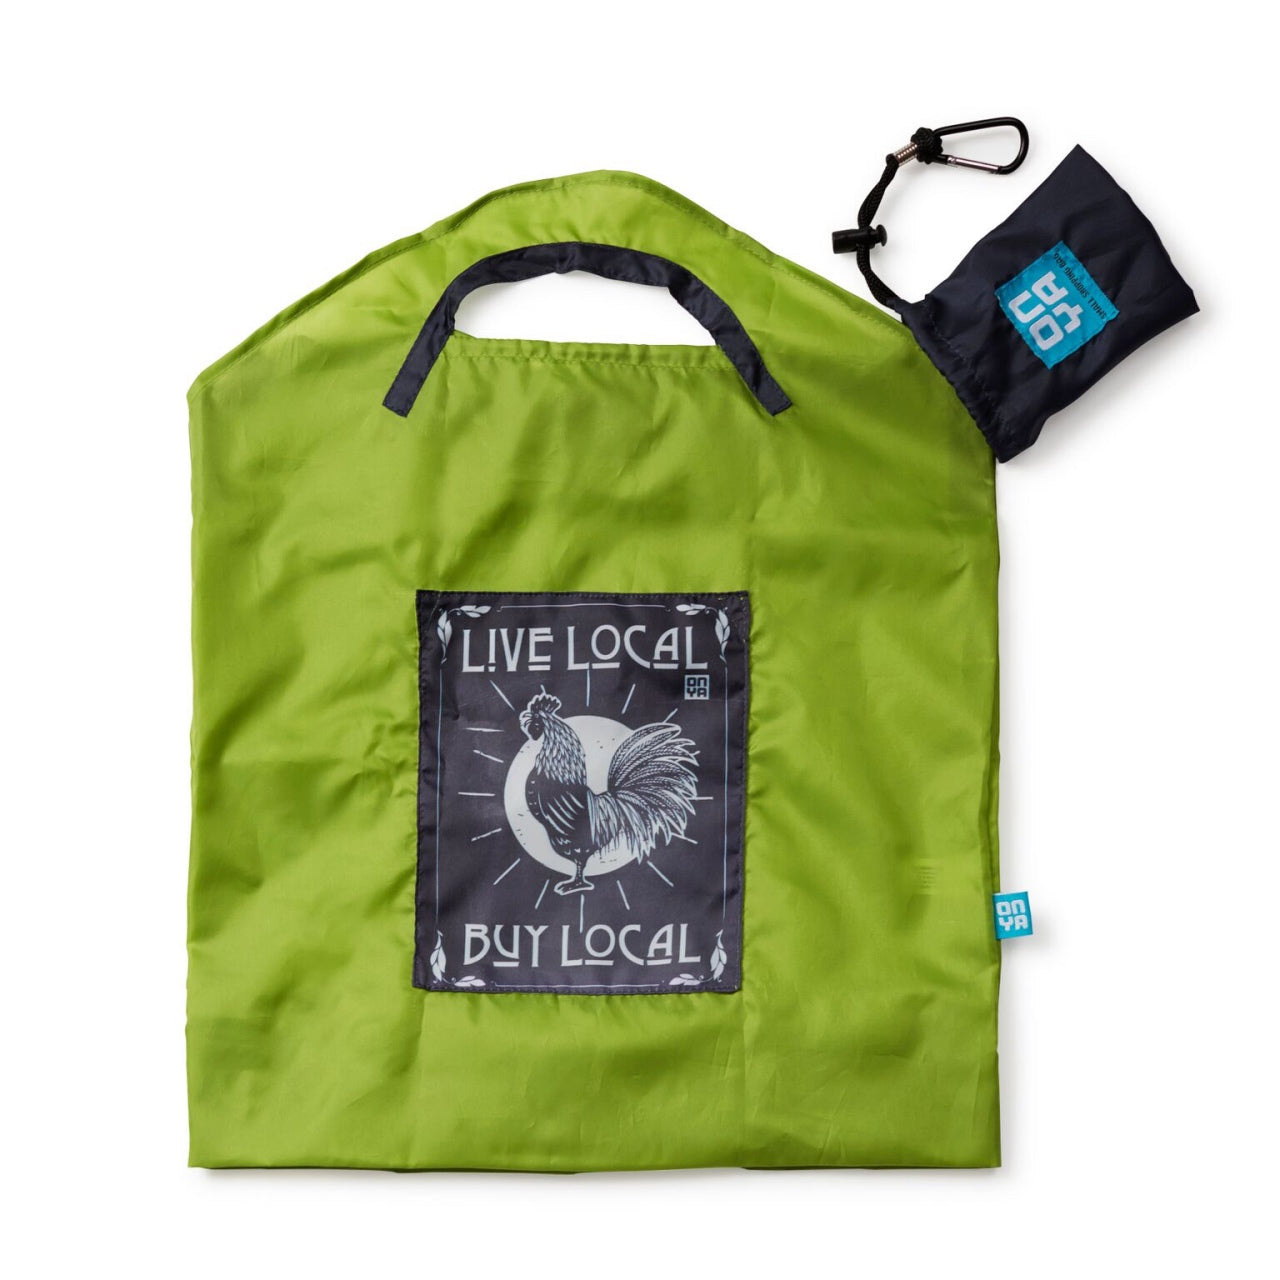 Onya Small Shopping Bag - Live Local